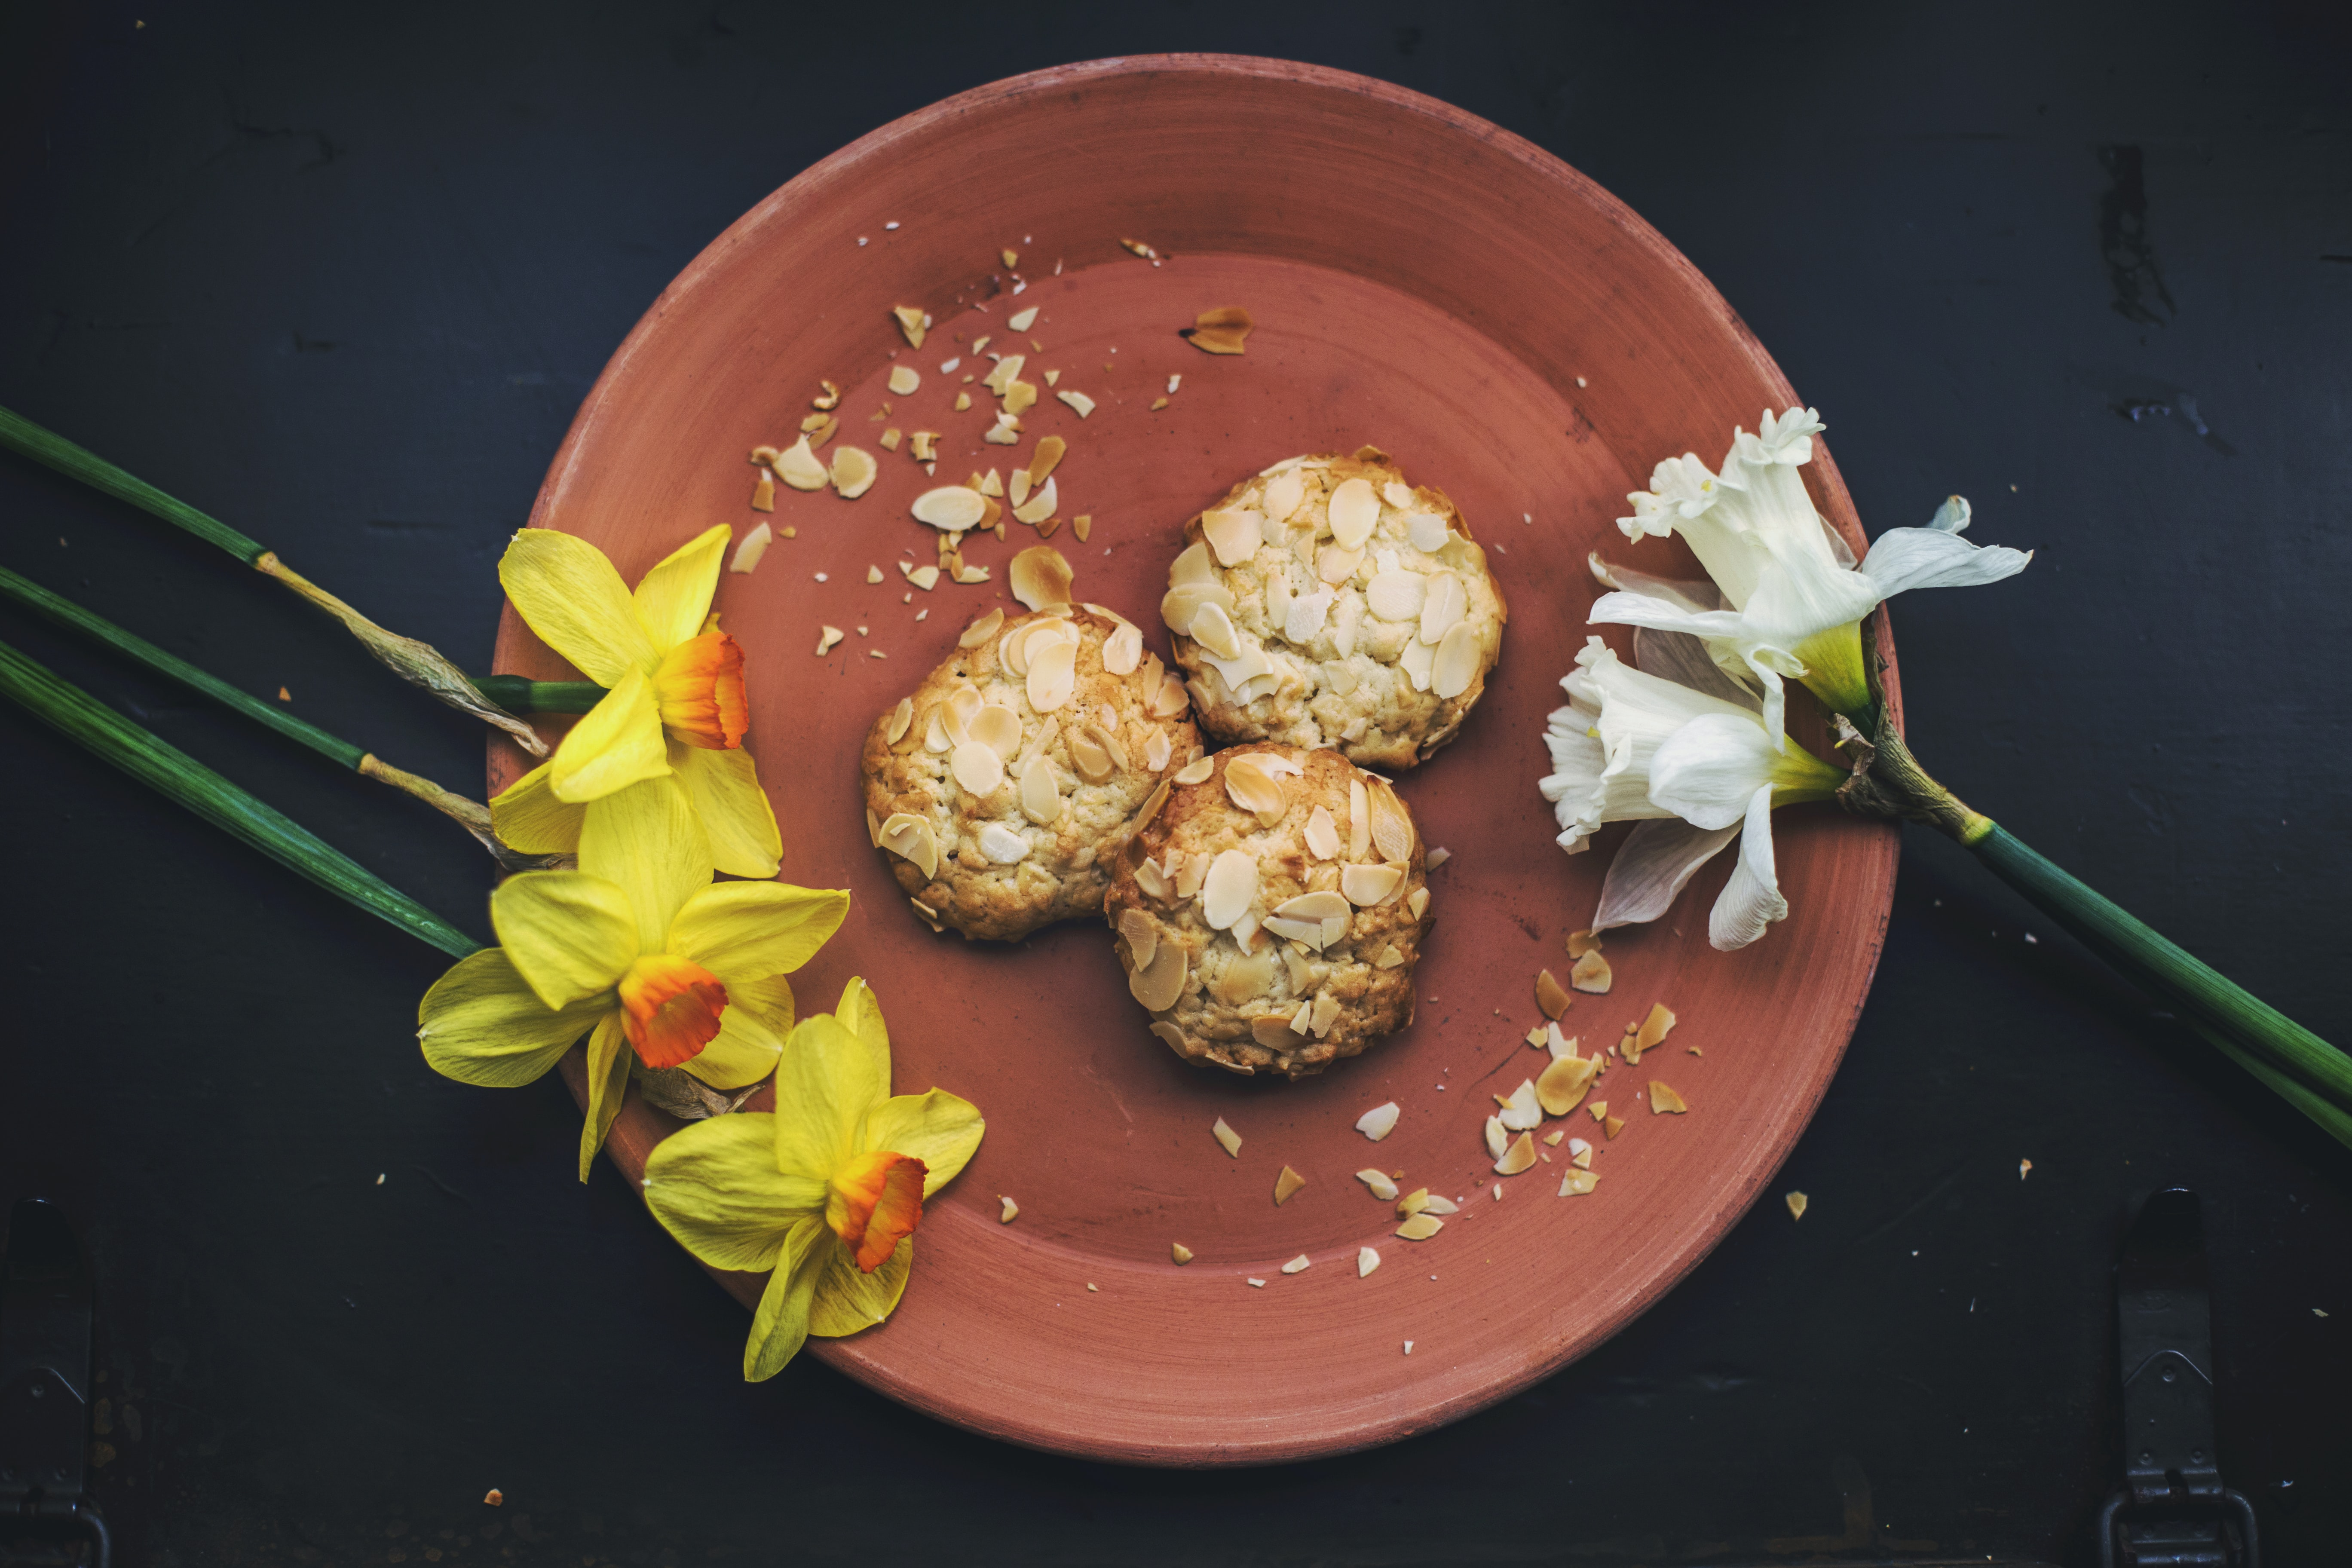 three round cookies on brown plate with petaled flowers